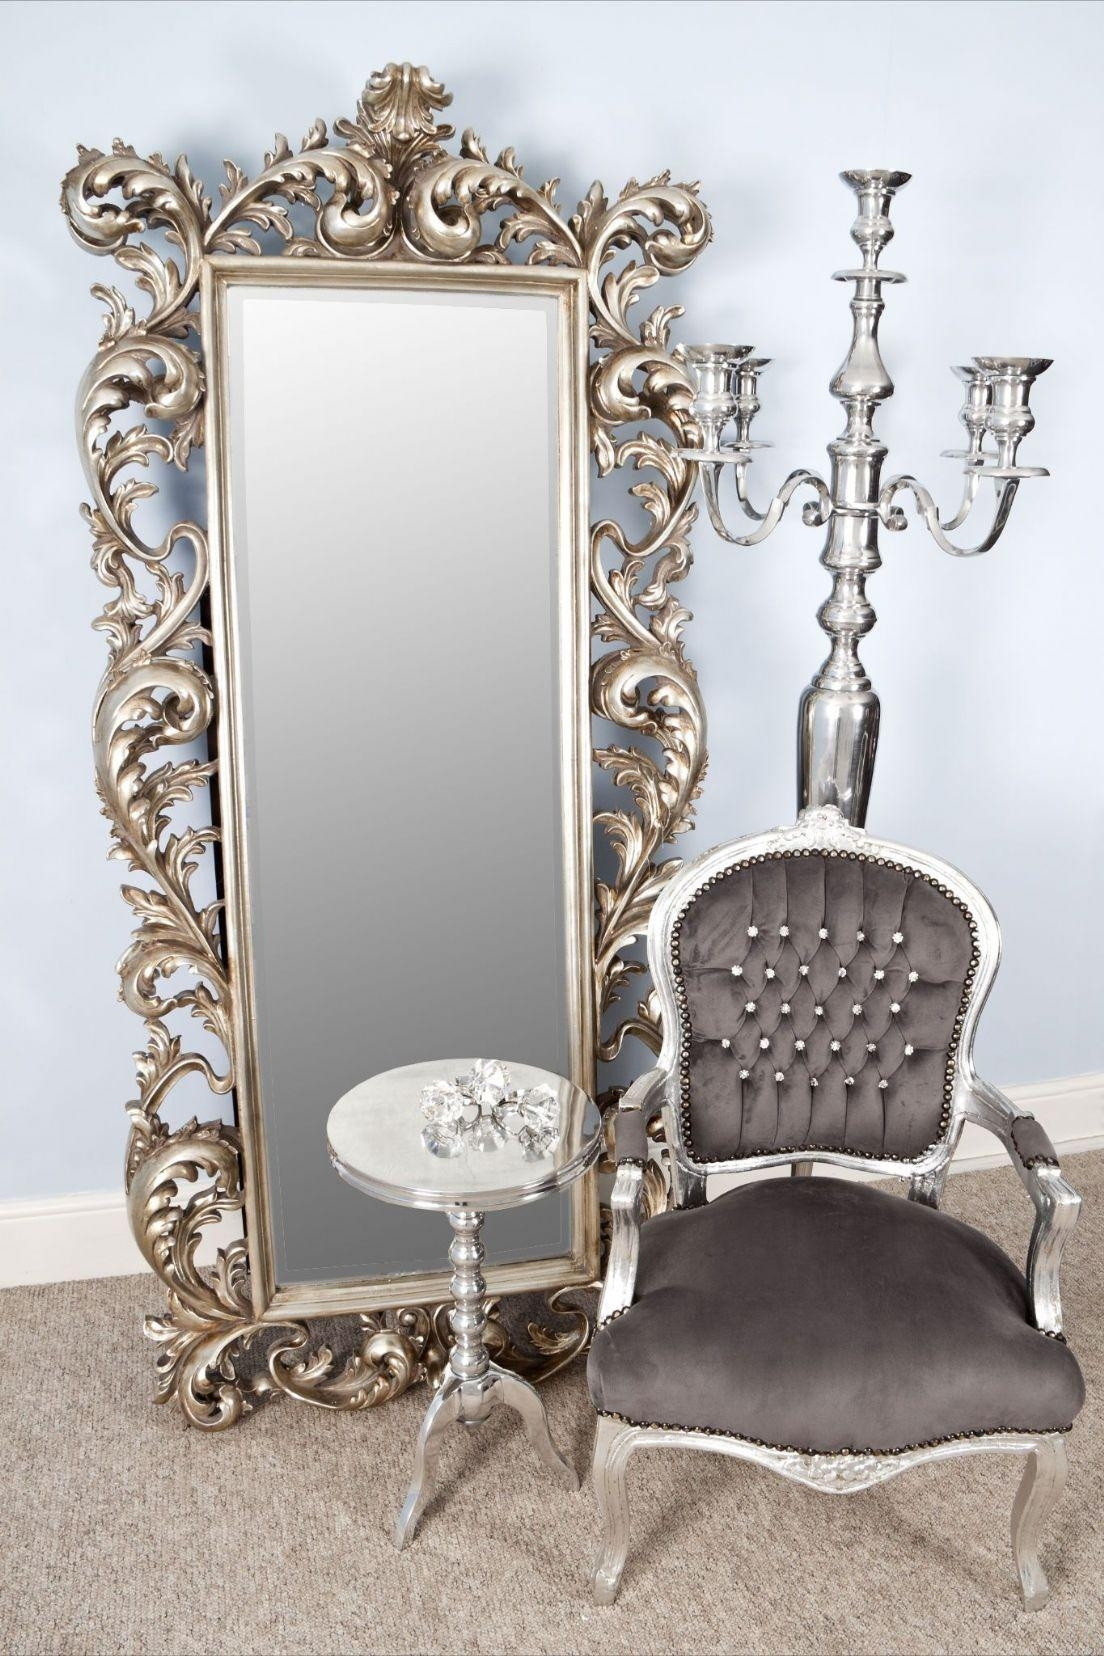 Ornate Mirrors For Sale 118 Awesome Exterior With Large Gold Very Intended For Extra Large Gold Mirror (View 10 of 20)